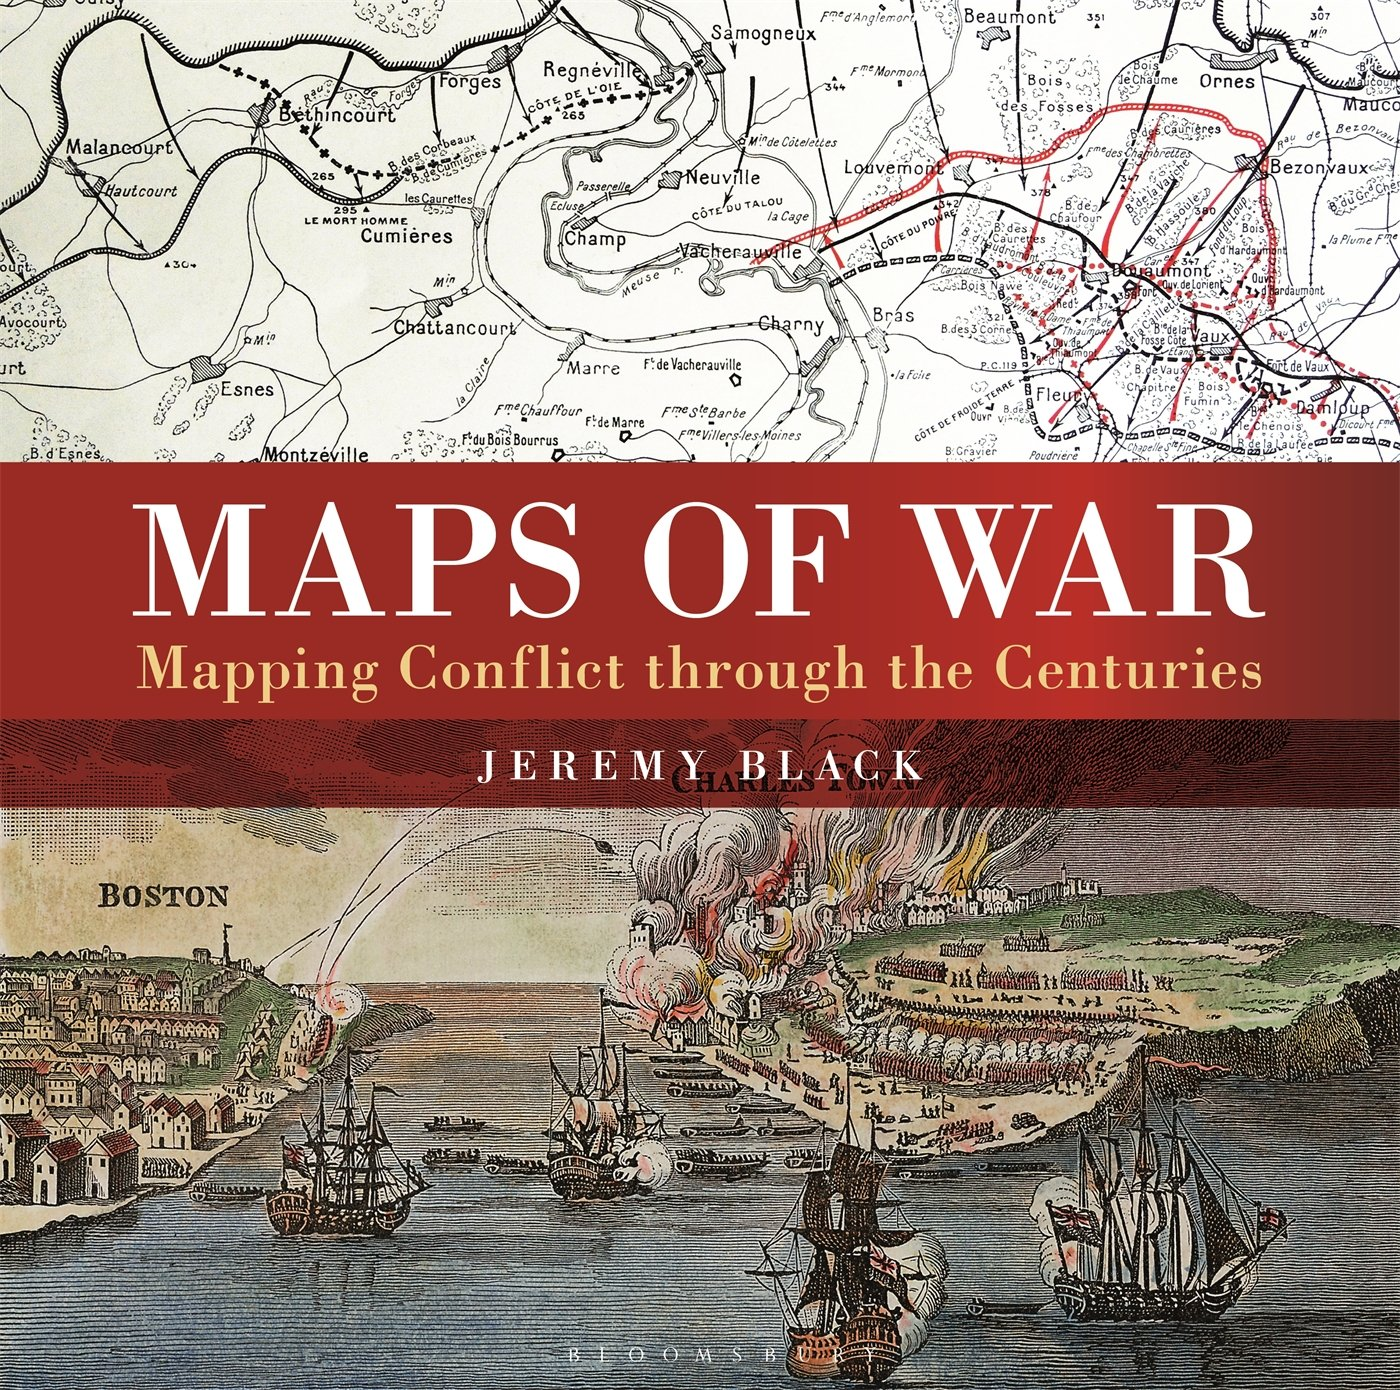 Image OfMaps Of War: Mapping Conflict Through The Centuries